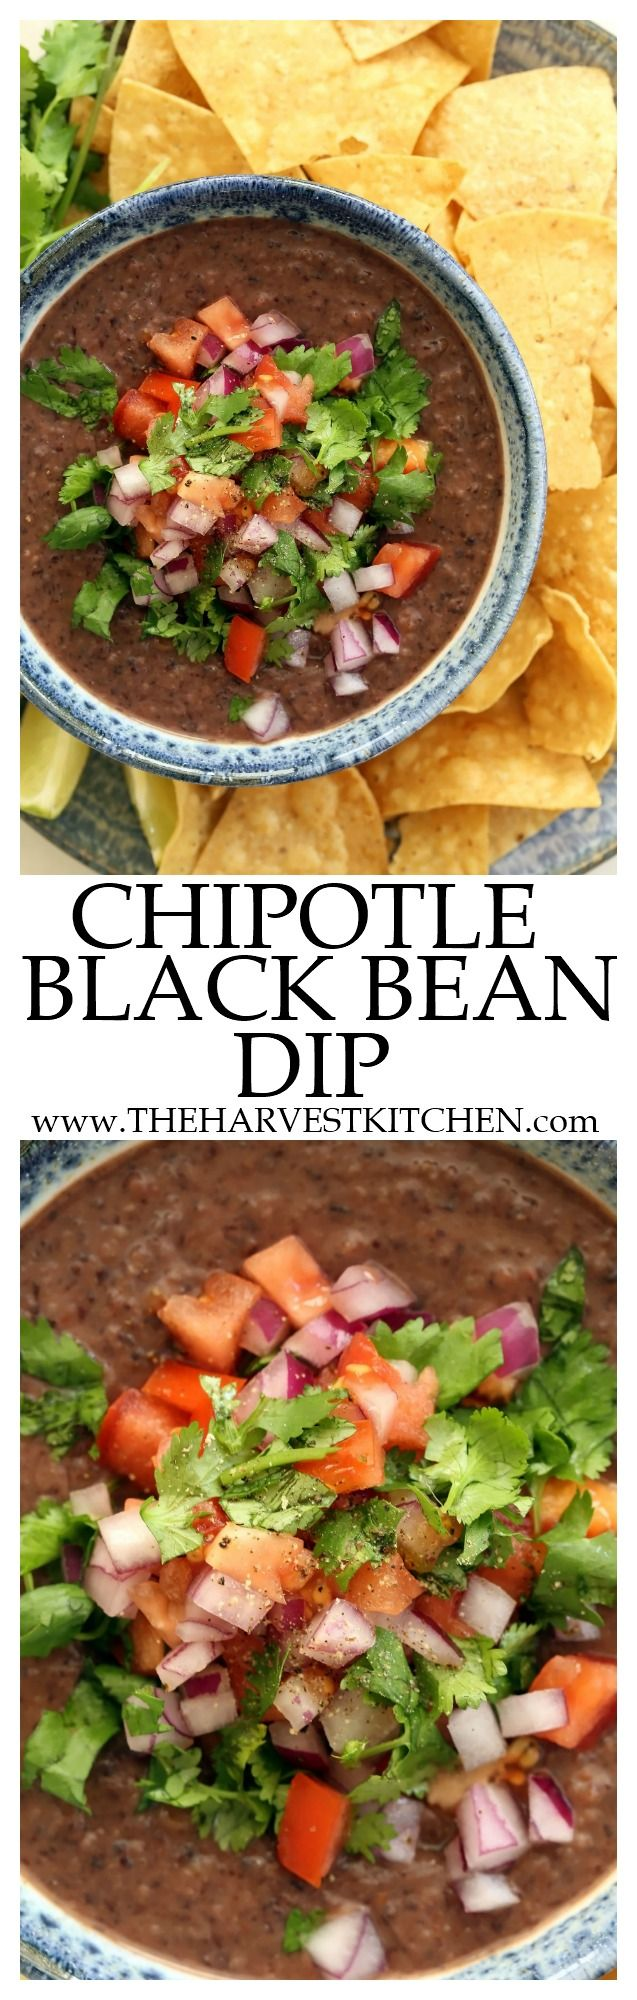 This Chipotle Black Bean Dip recipe couldn't be easier. Just toss the ingredients in a food processor and whir away! Black beans make this dip extra healthy and the chipotle makes it extra flavorful. Serve with tortilla chips (preferably baked), gluten-free crackers or crudités (veggies). | vegetarian dip recipes | | vegetarian recipes | | clean eating | | healthy recipes |